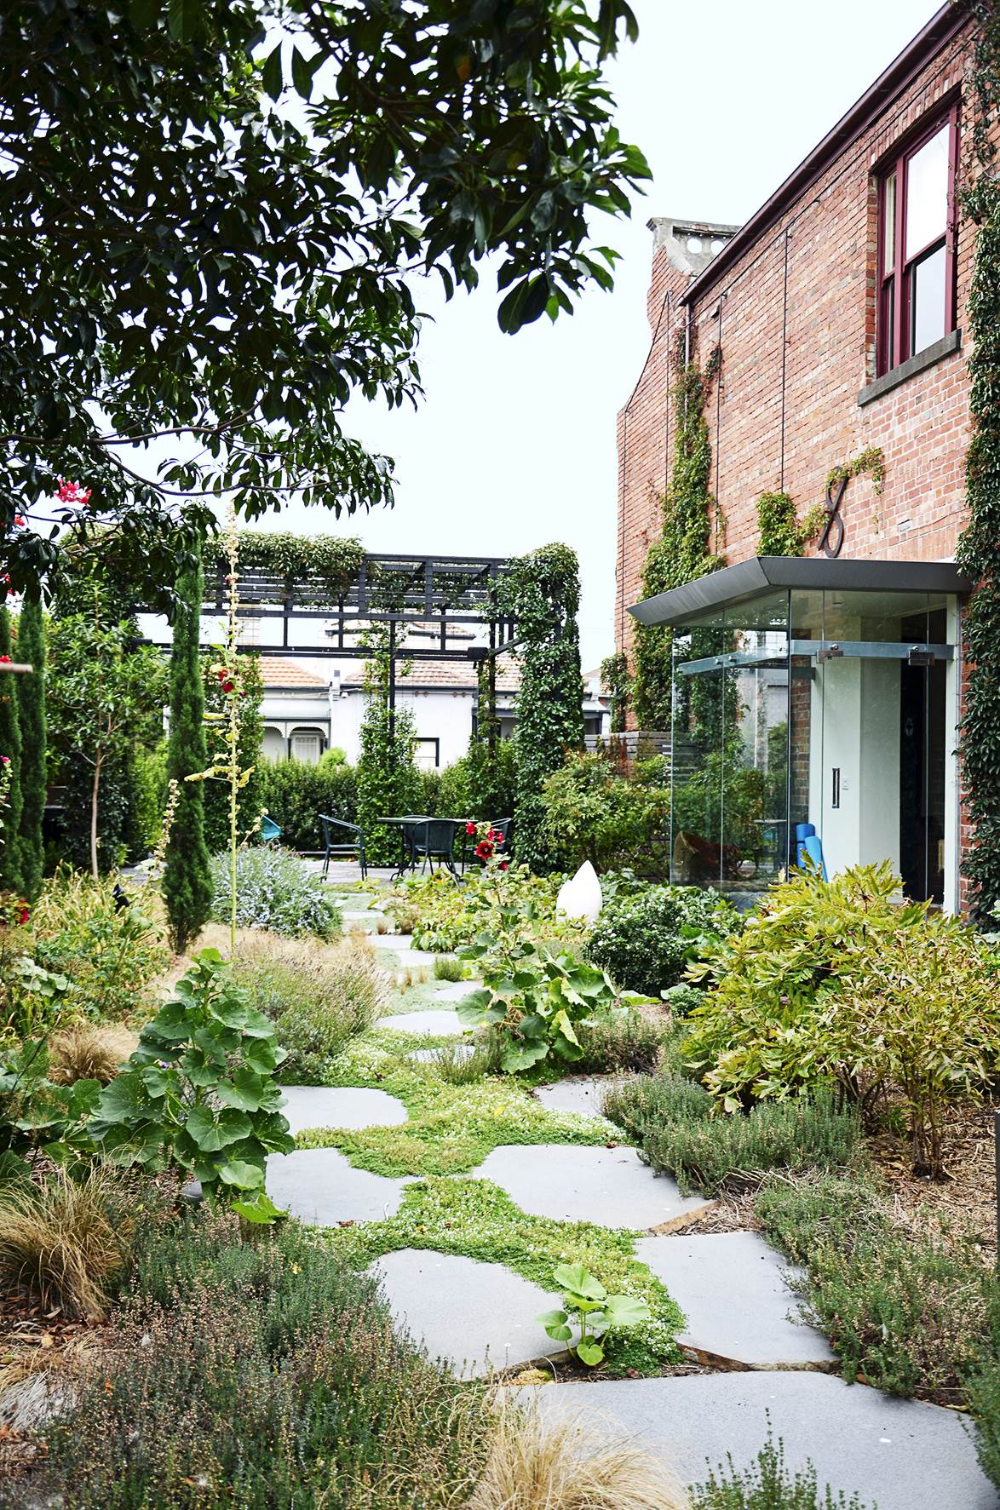 c8ebf18ed624c1f887b91f7aa51f2b0f - Sustainable Gardening In The City Of Melbourne